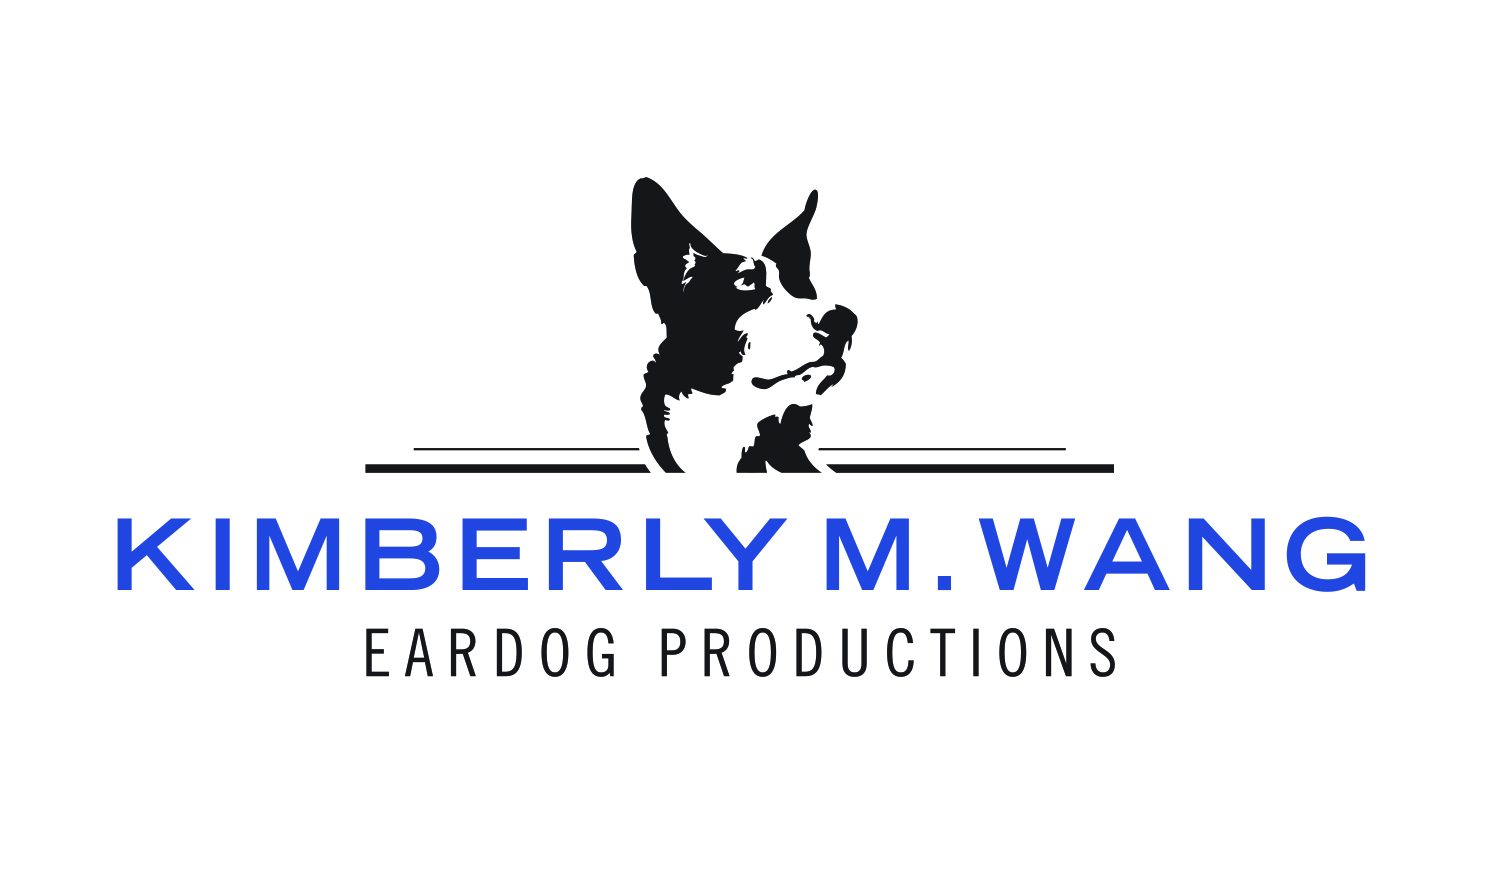 Eardog Productions